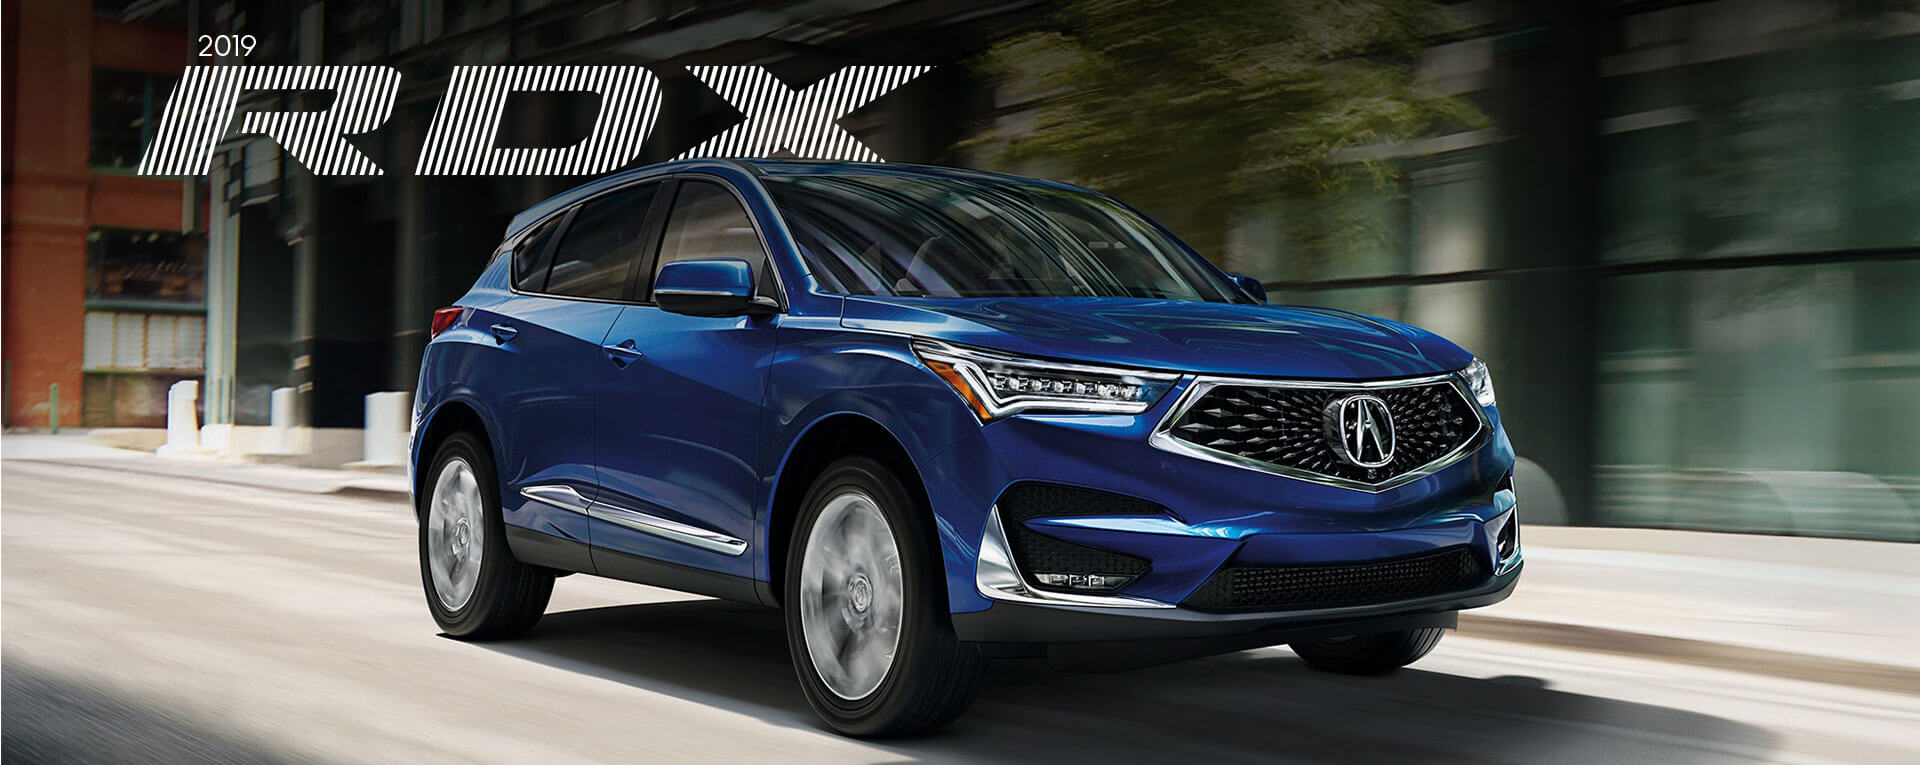 2019 Acura Rdx Dallas Forth Worth Acura Dealers